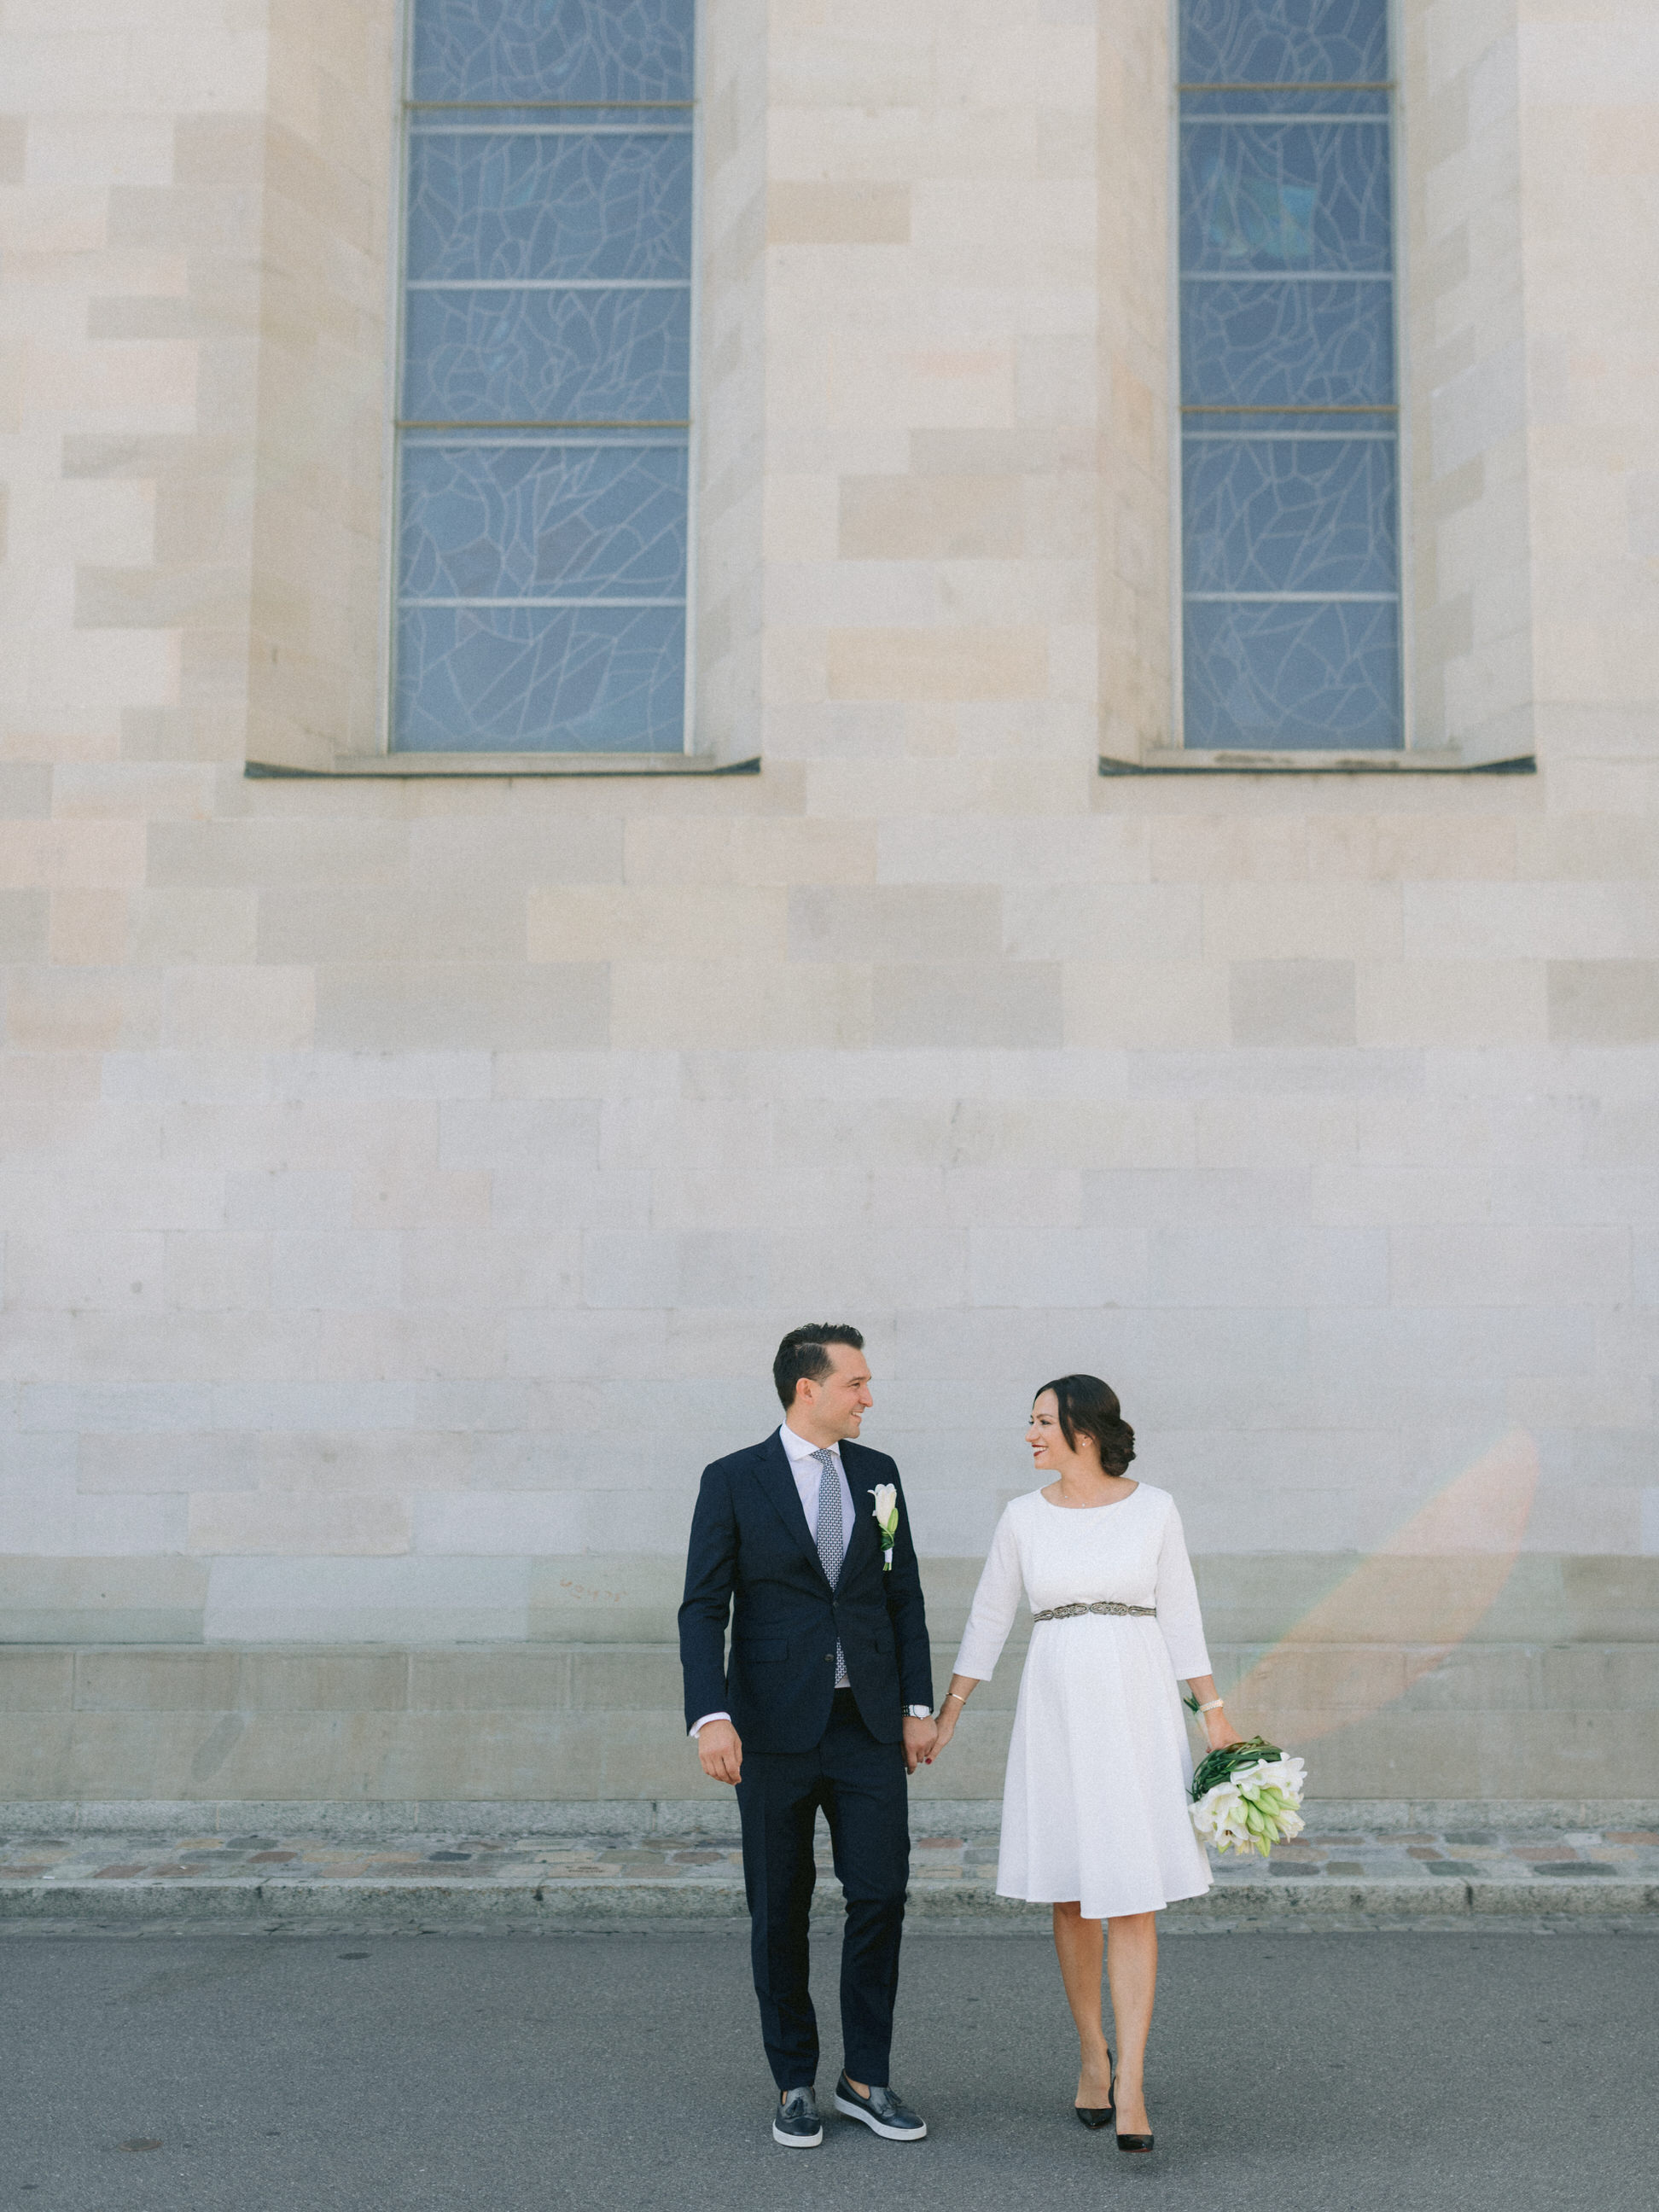 Civil Wedding Zurich, Switzerland Photographer